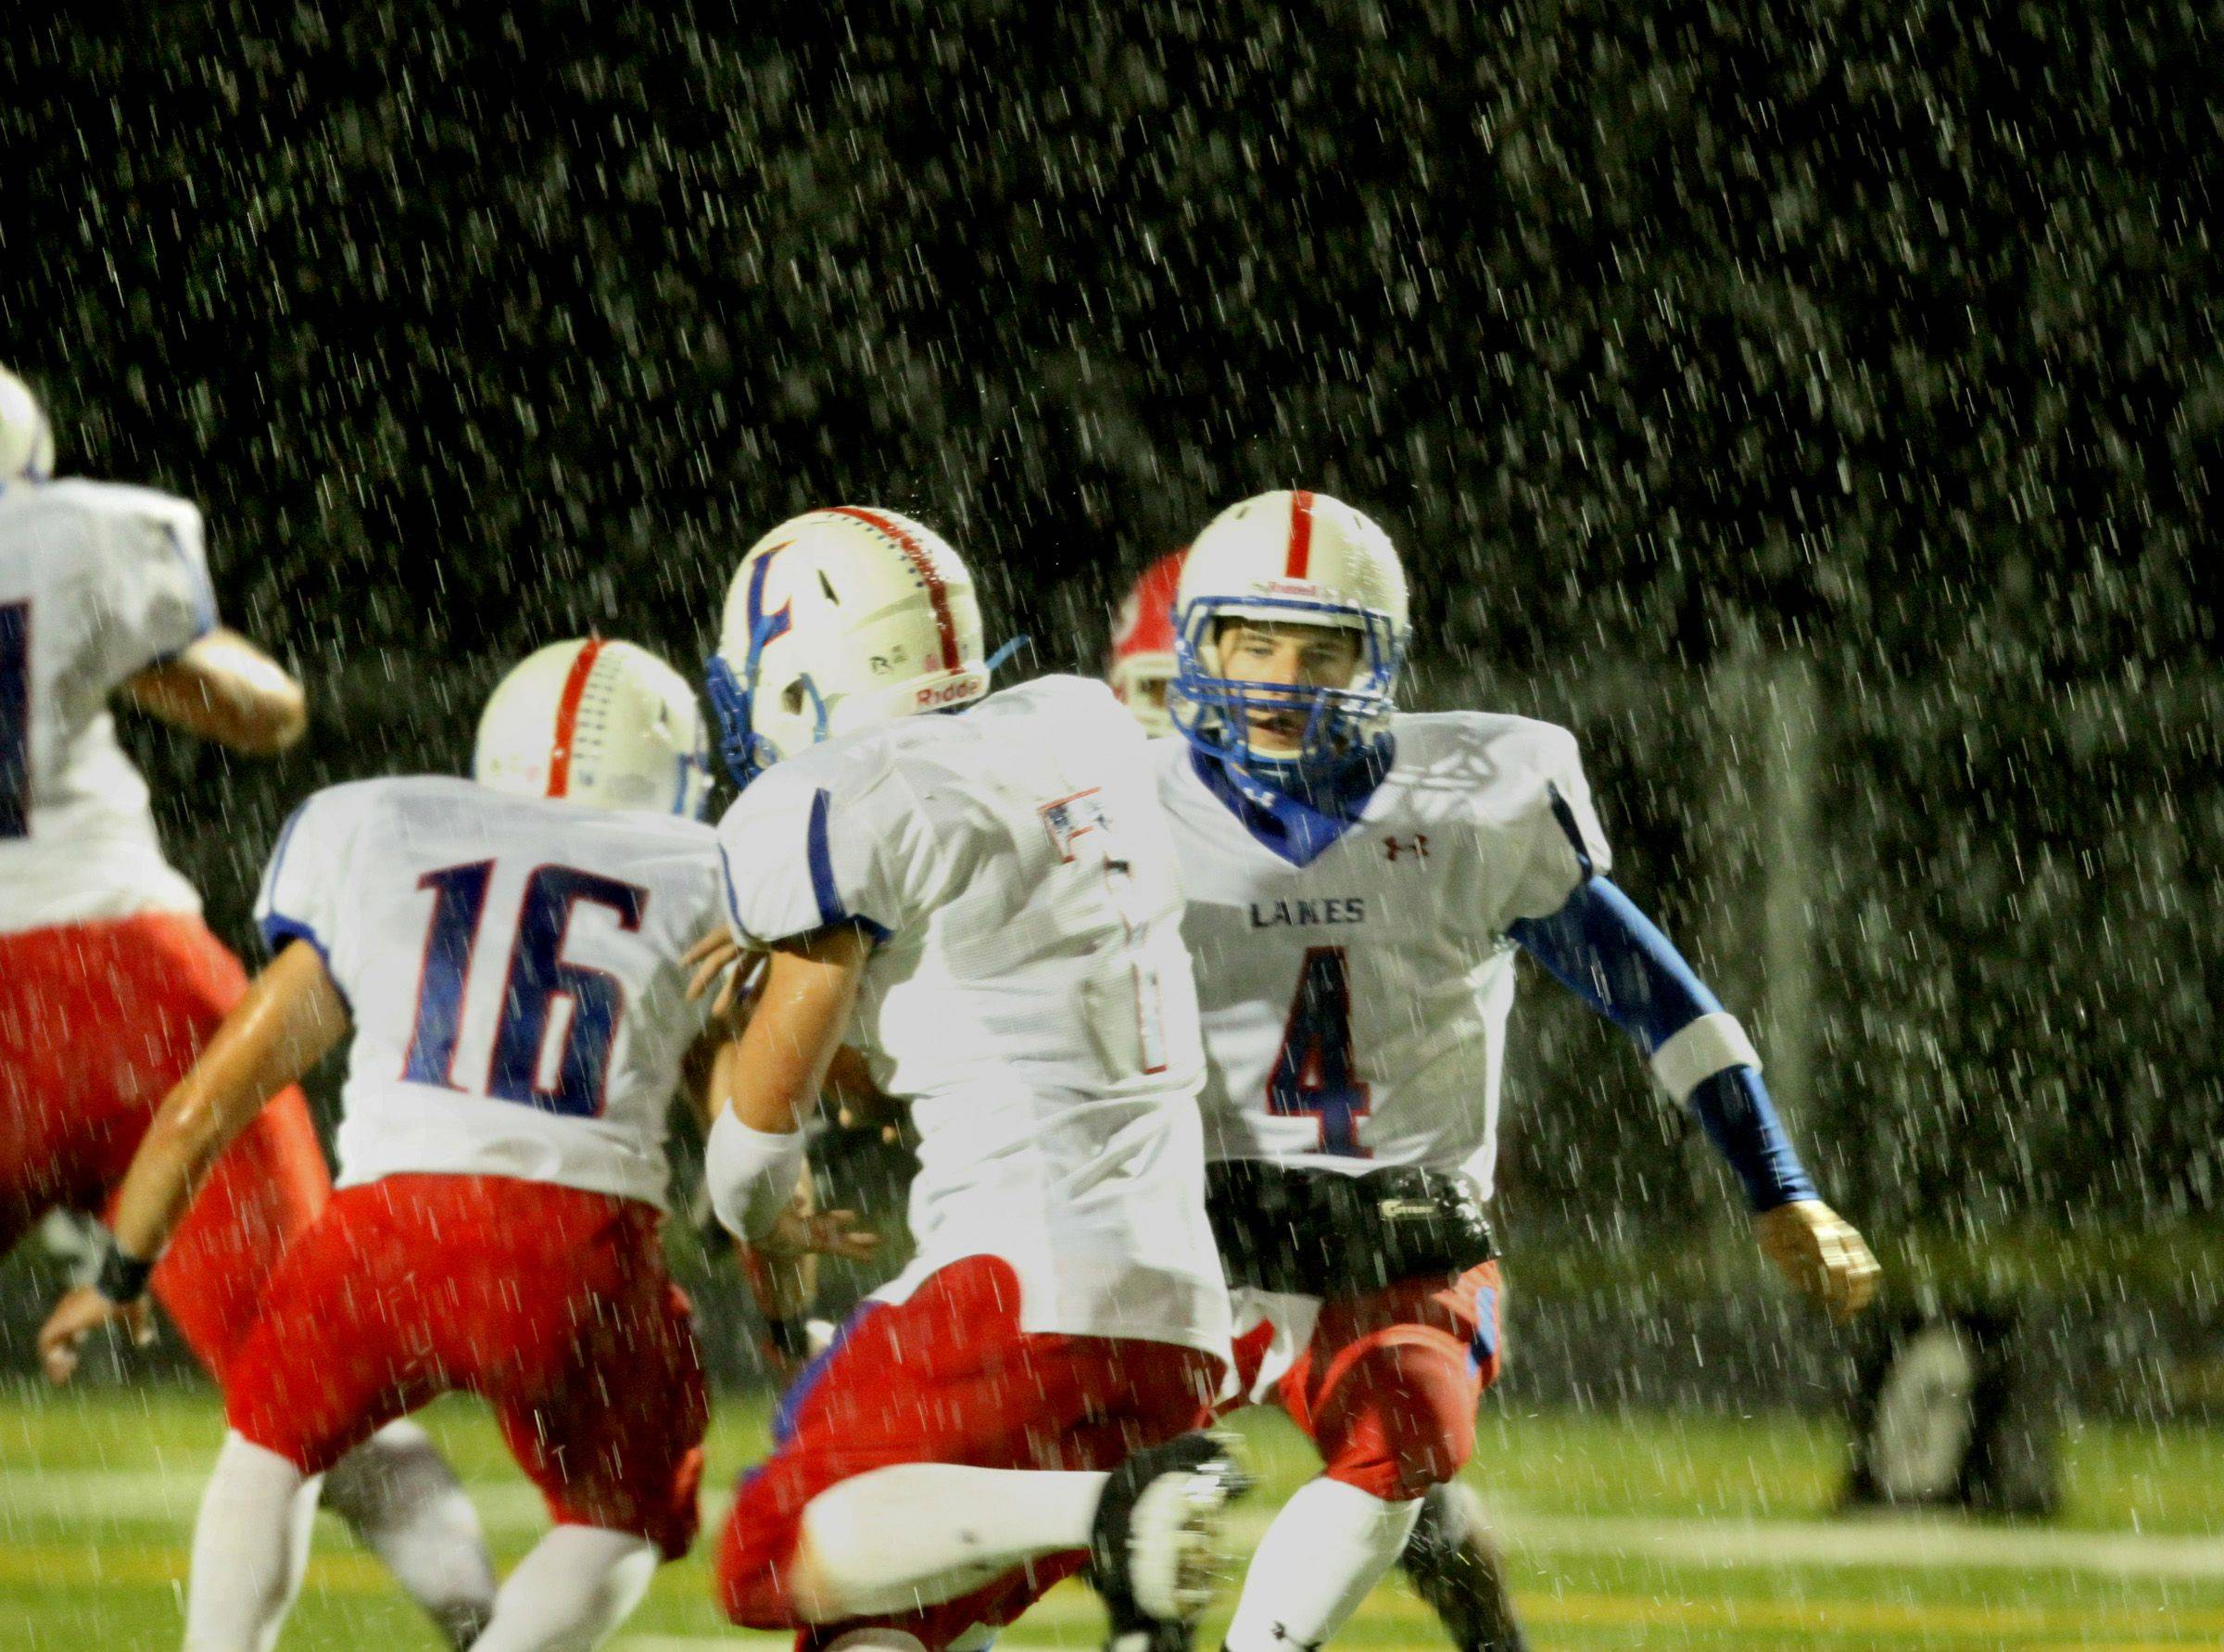 WEEK 9- Lakes quarterback Jeff Eder looks to hand the ball off against Grant as heavy rain falls in the second quarter.